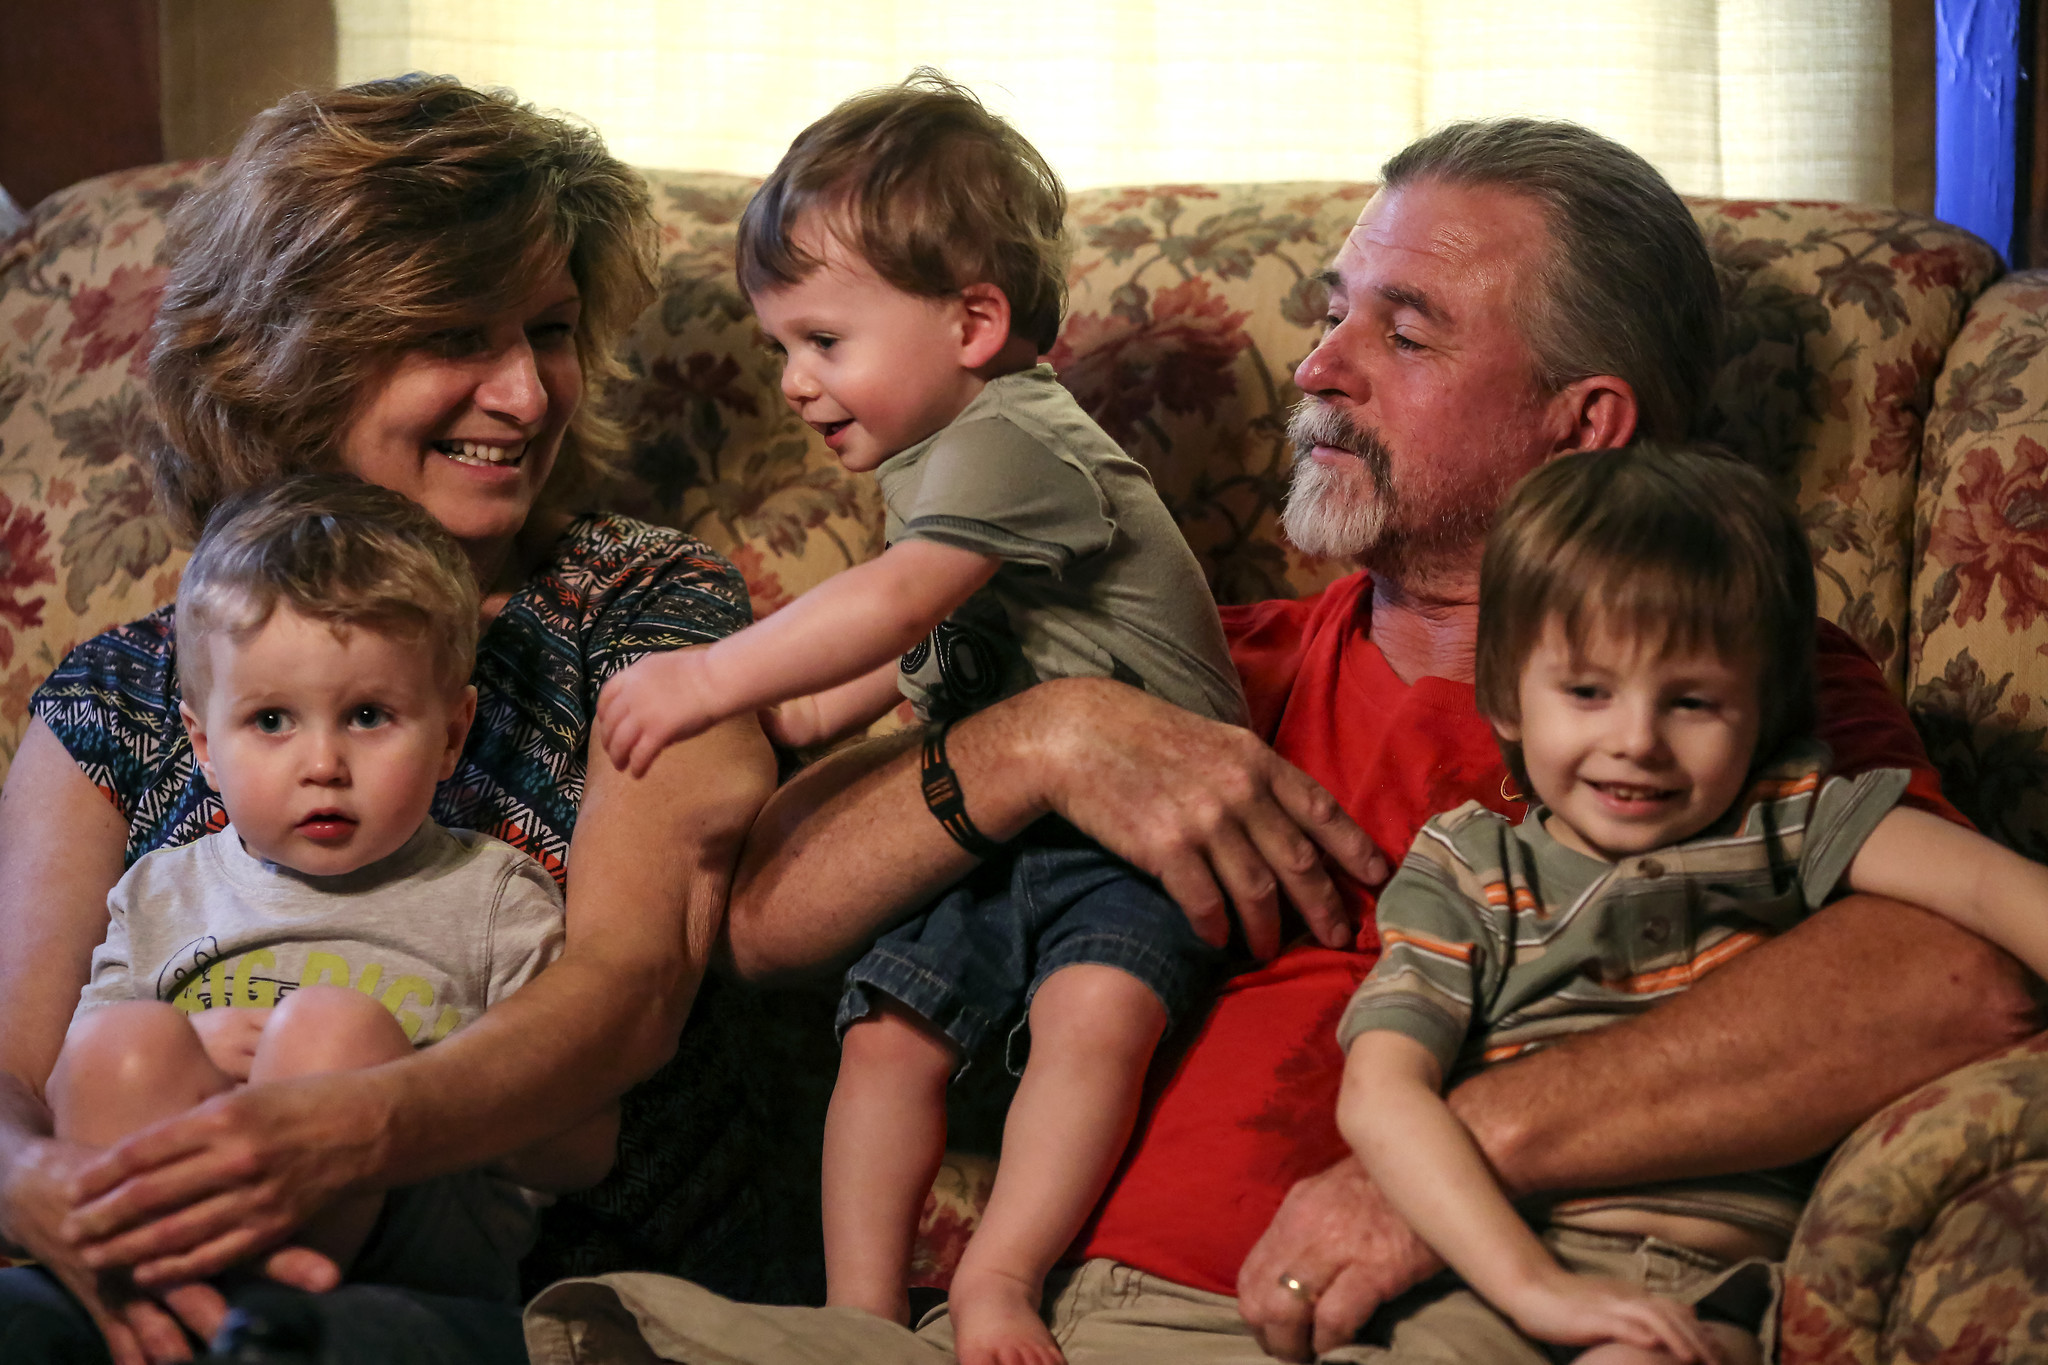 Mike and Lynne Belisle hold their grandchildren Aiden, 2 1/2, Nicholas, 1 1/2, and Joey, 5, (left to right) at their Quincy home.